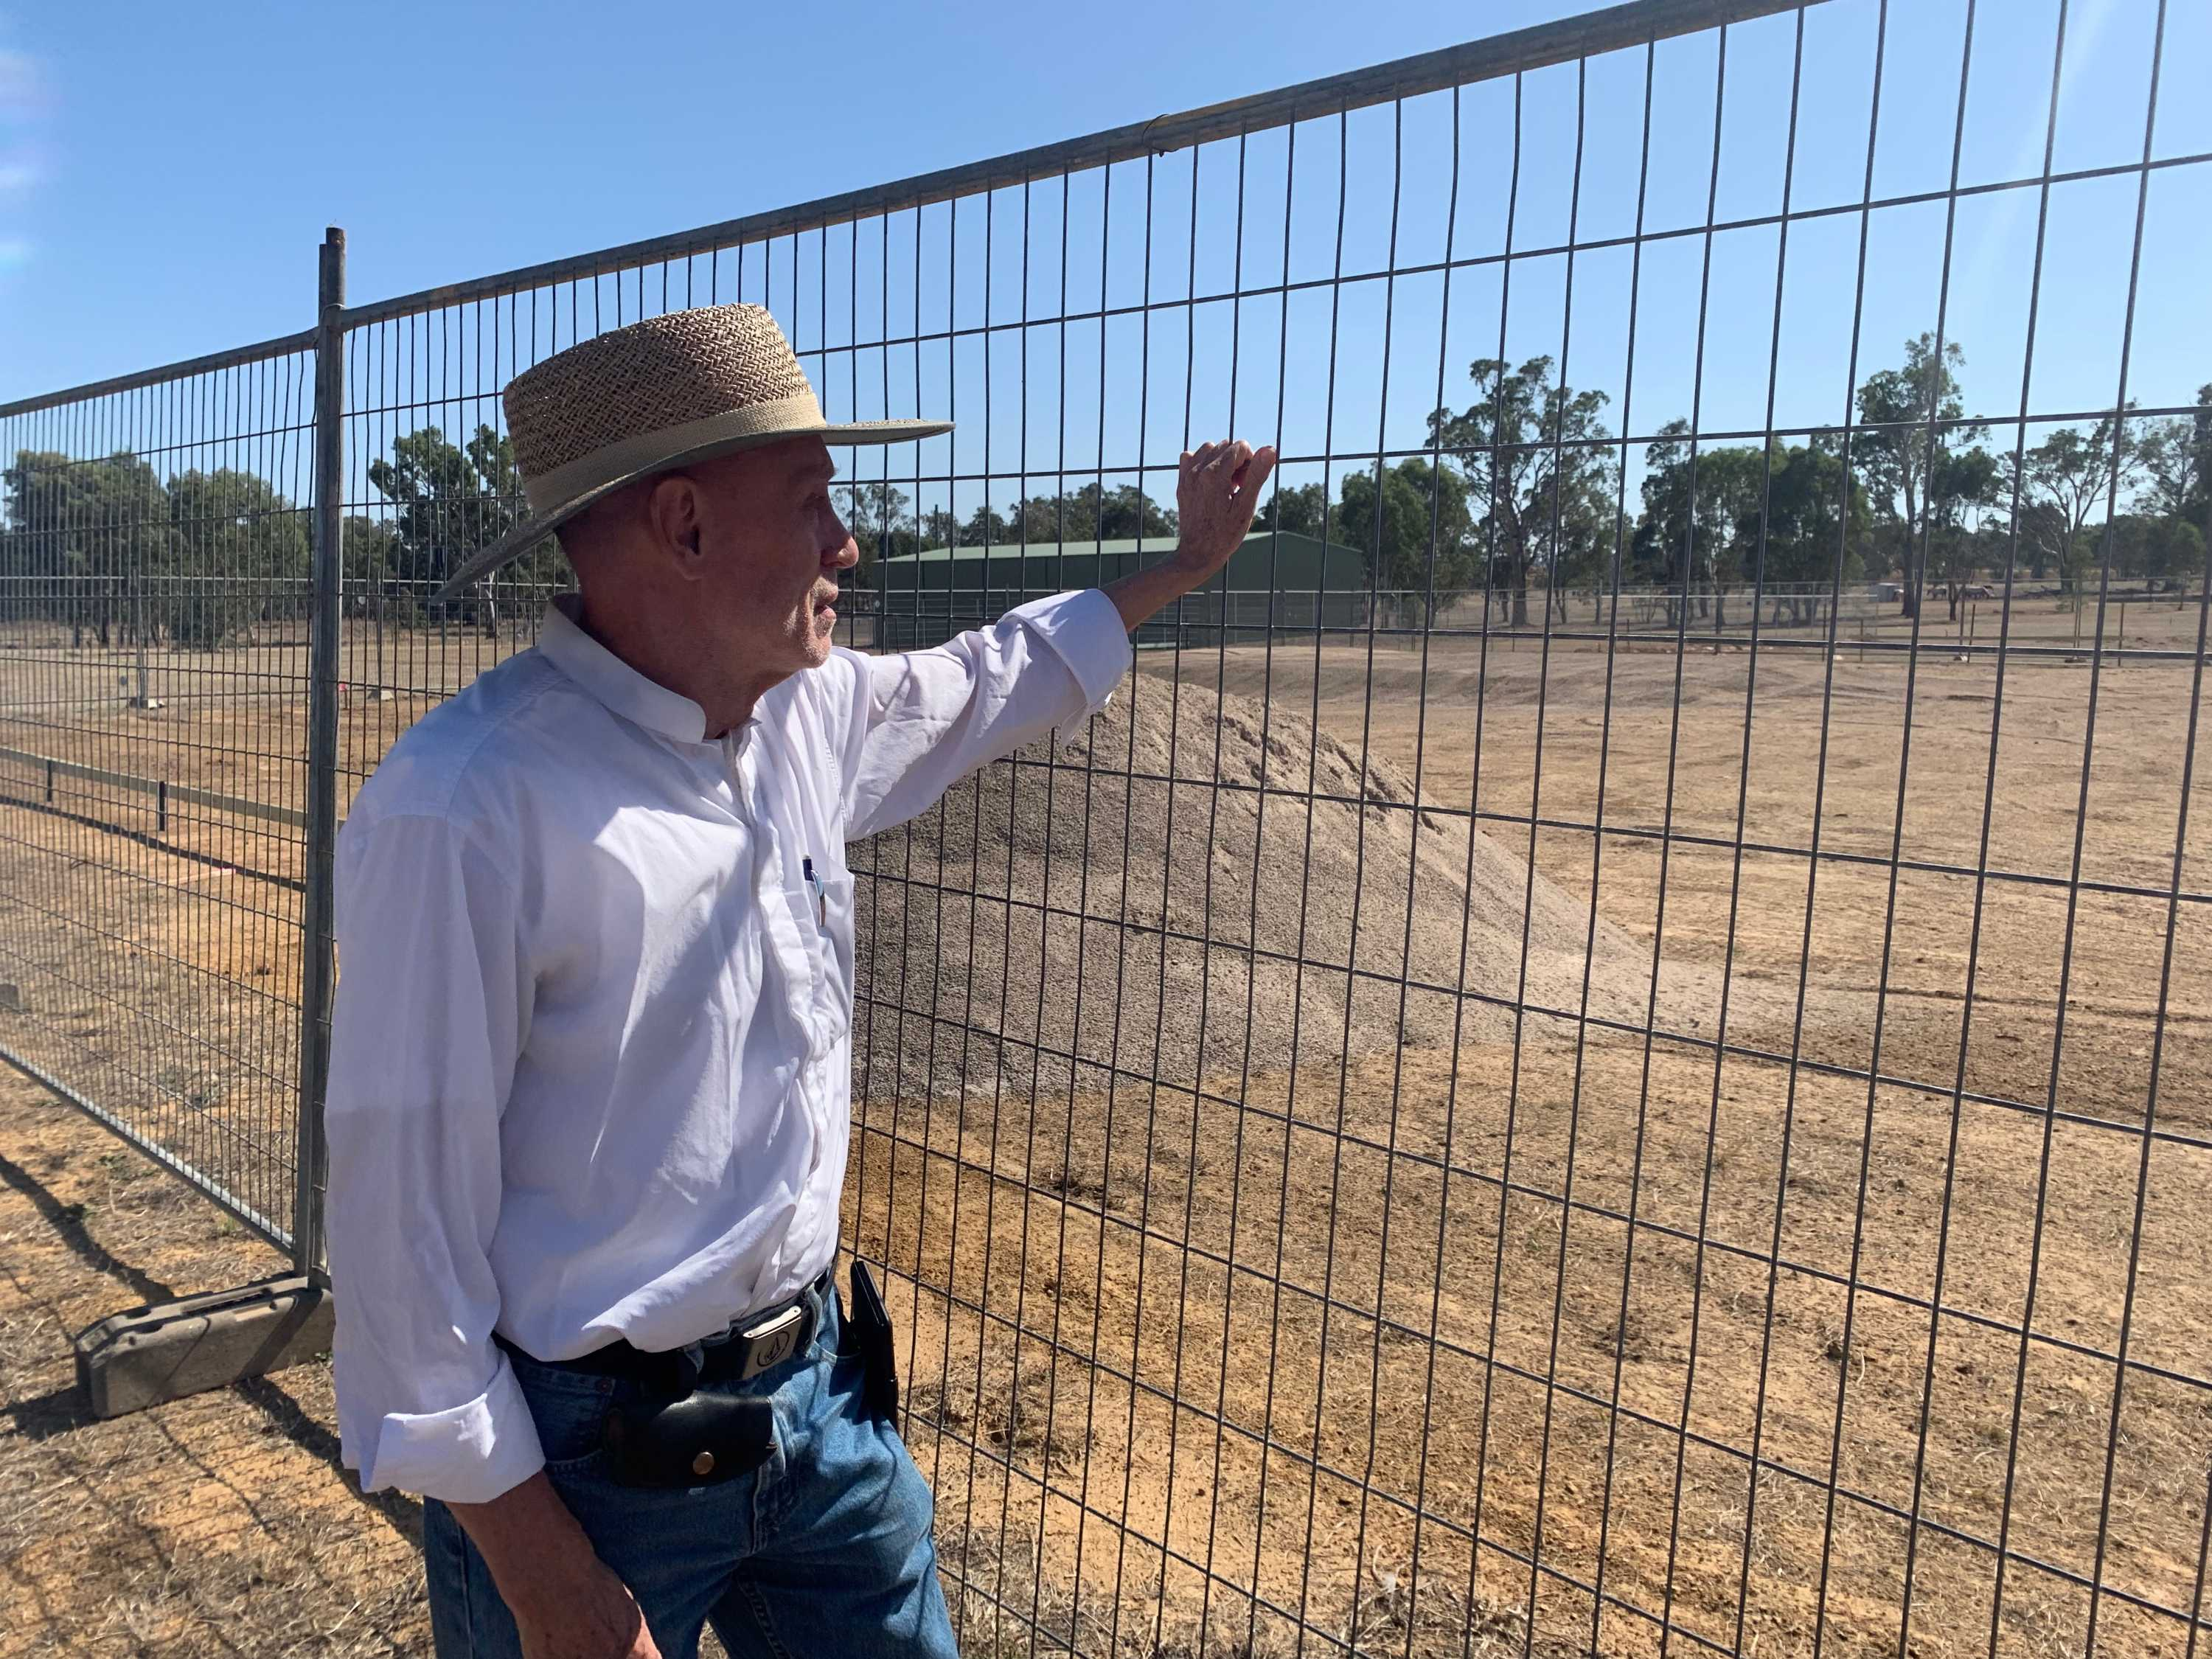 Man in hat leans against a fence